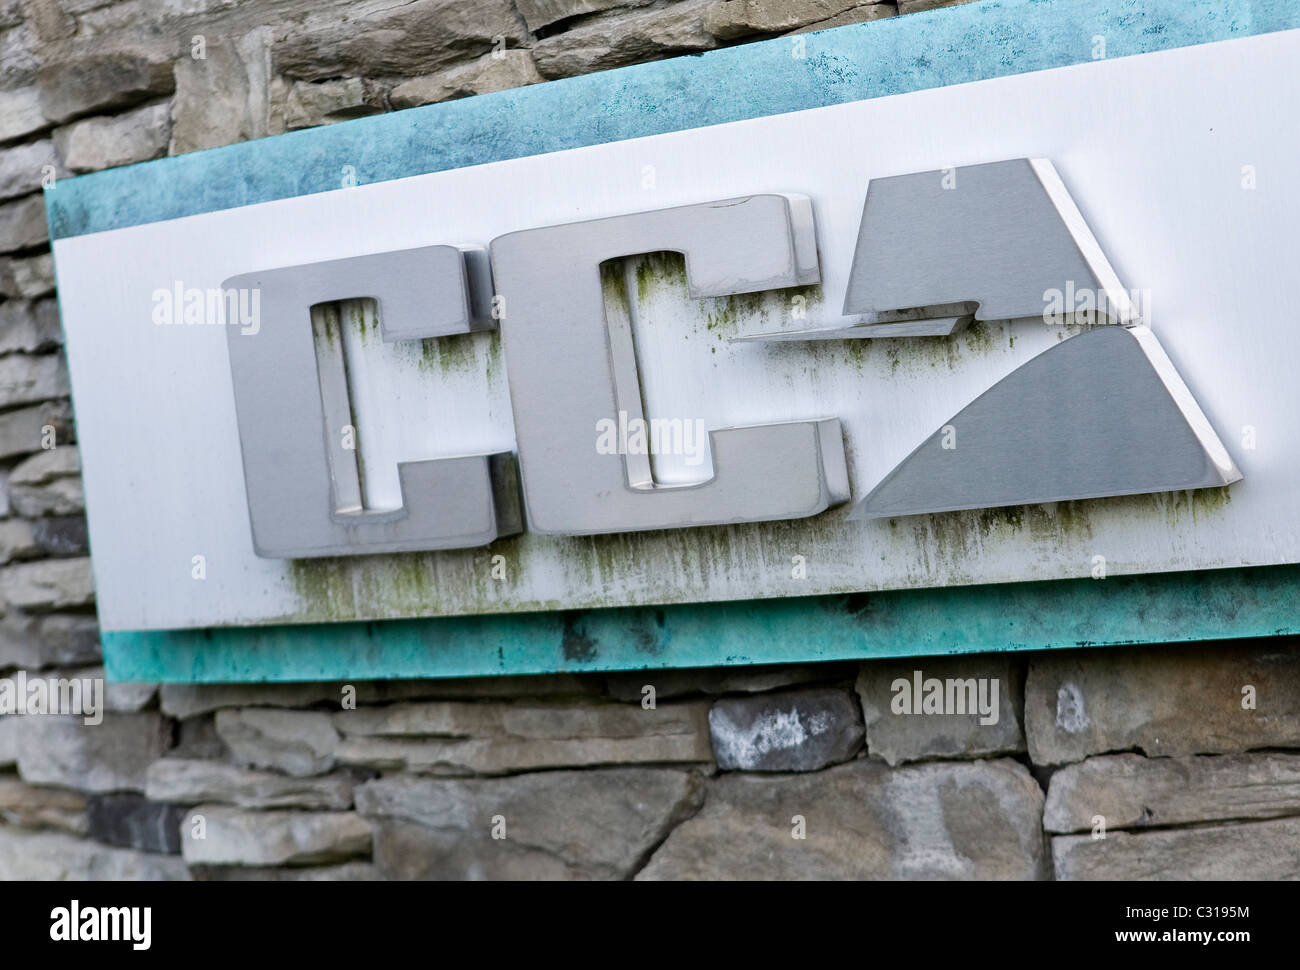 The Headquarters of the Corrections Corporation Of America (CCA) - Stock Image